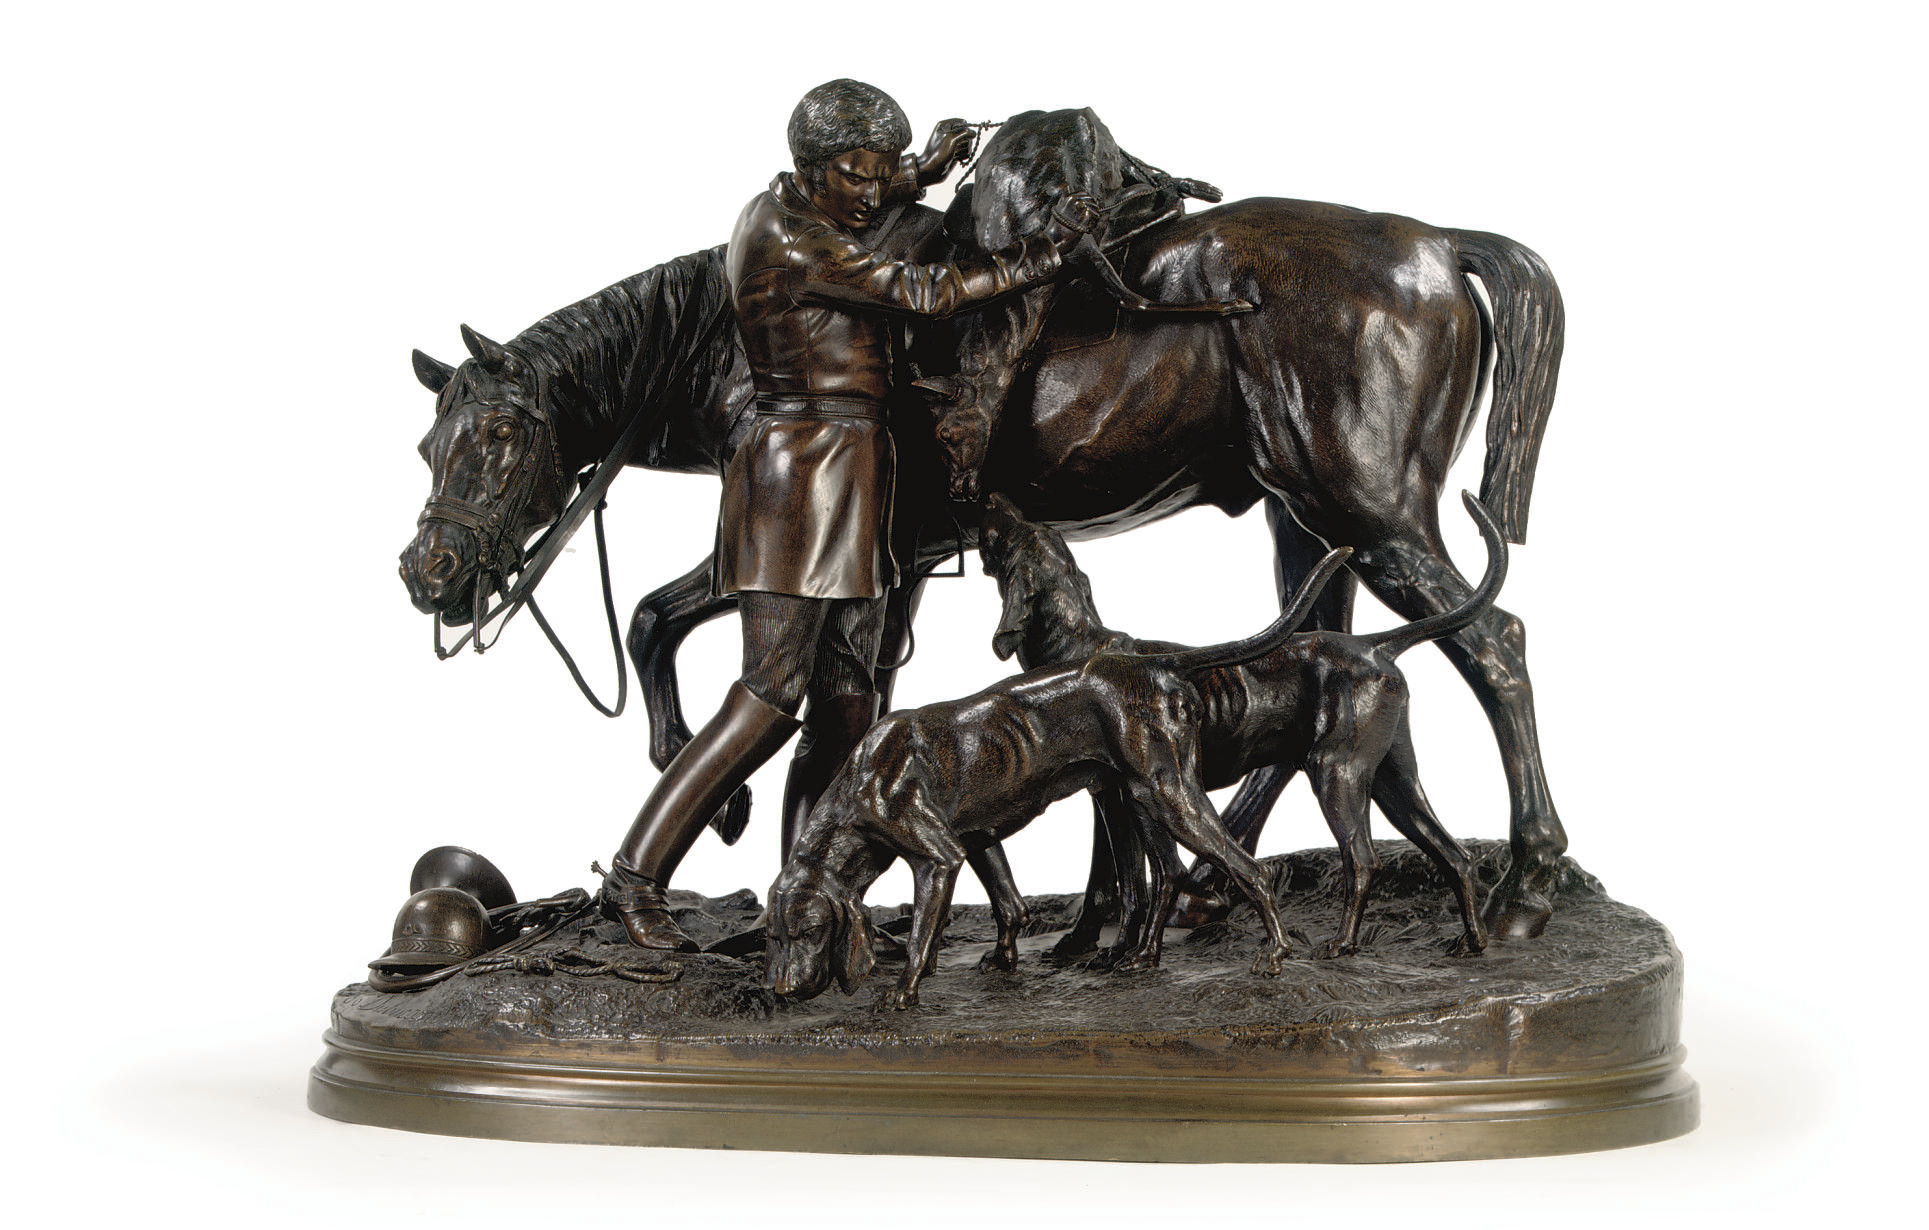 A BRONZE GROUP OF A YOUNG HUNDSMAN WITH HOUNDS, HORSE AND STAG 'LE RETOUR DE LA CHASSE A COURRE'